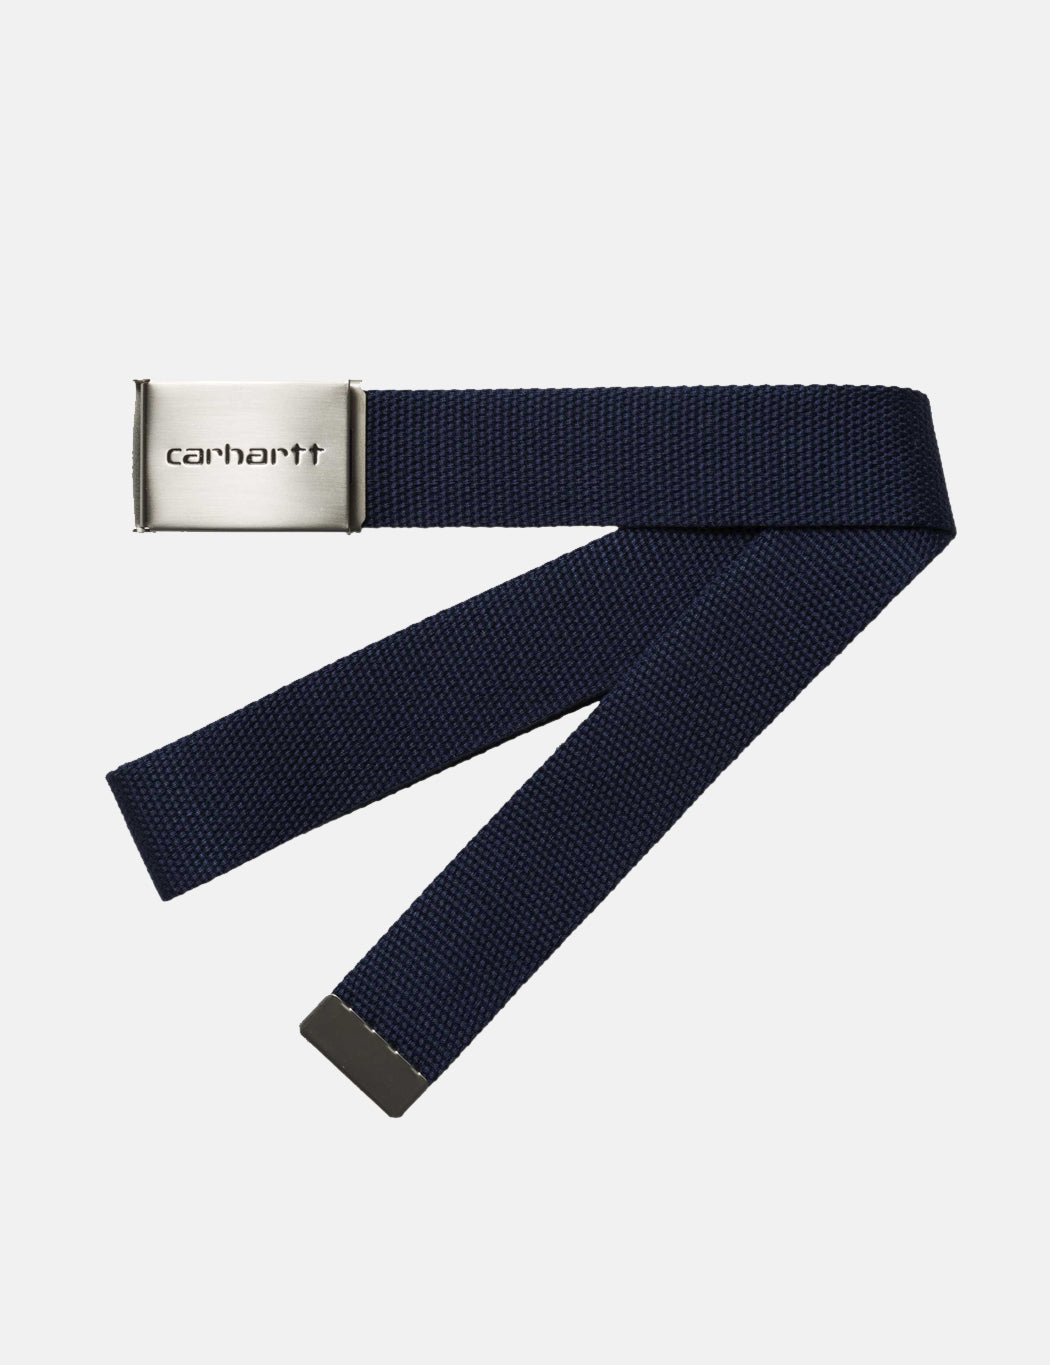 Carhartt Chrome Clip Belt - Dark Navy Blue